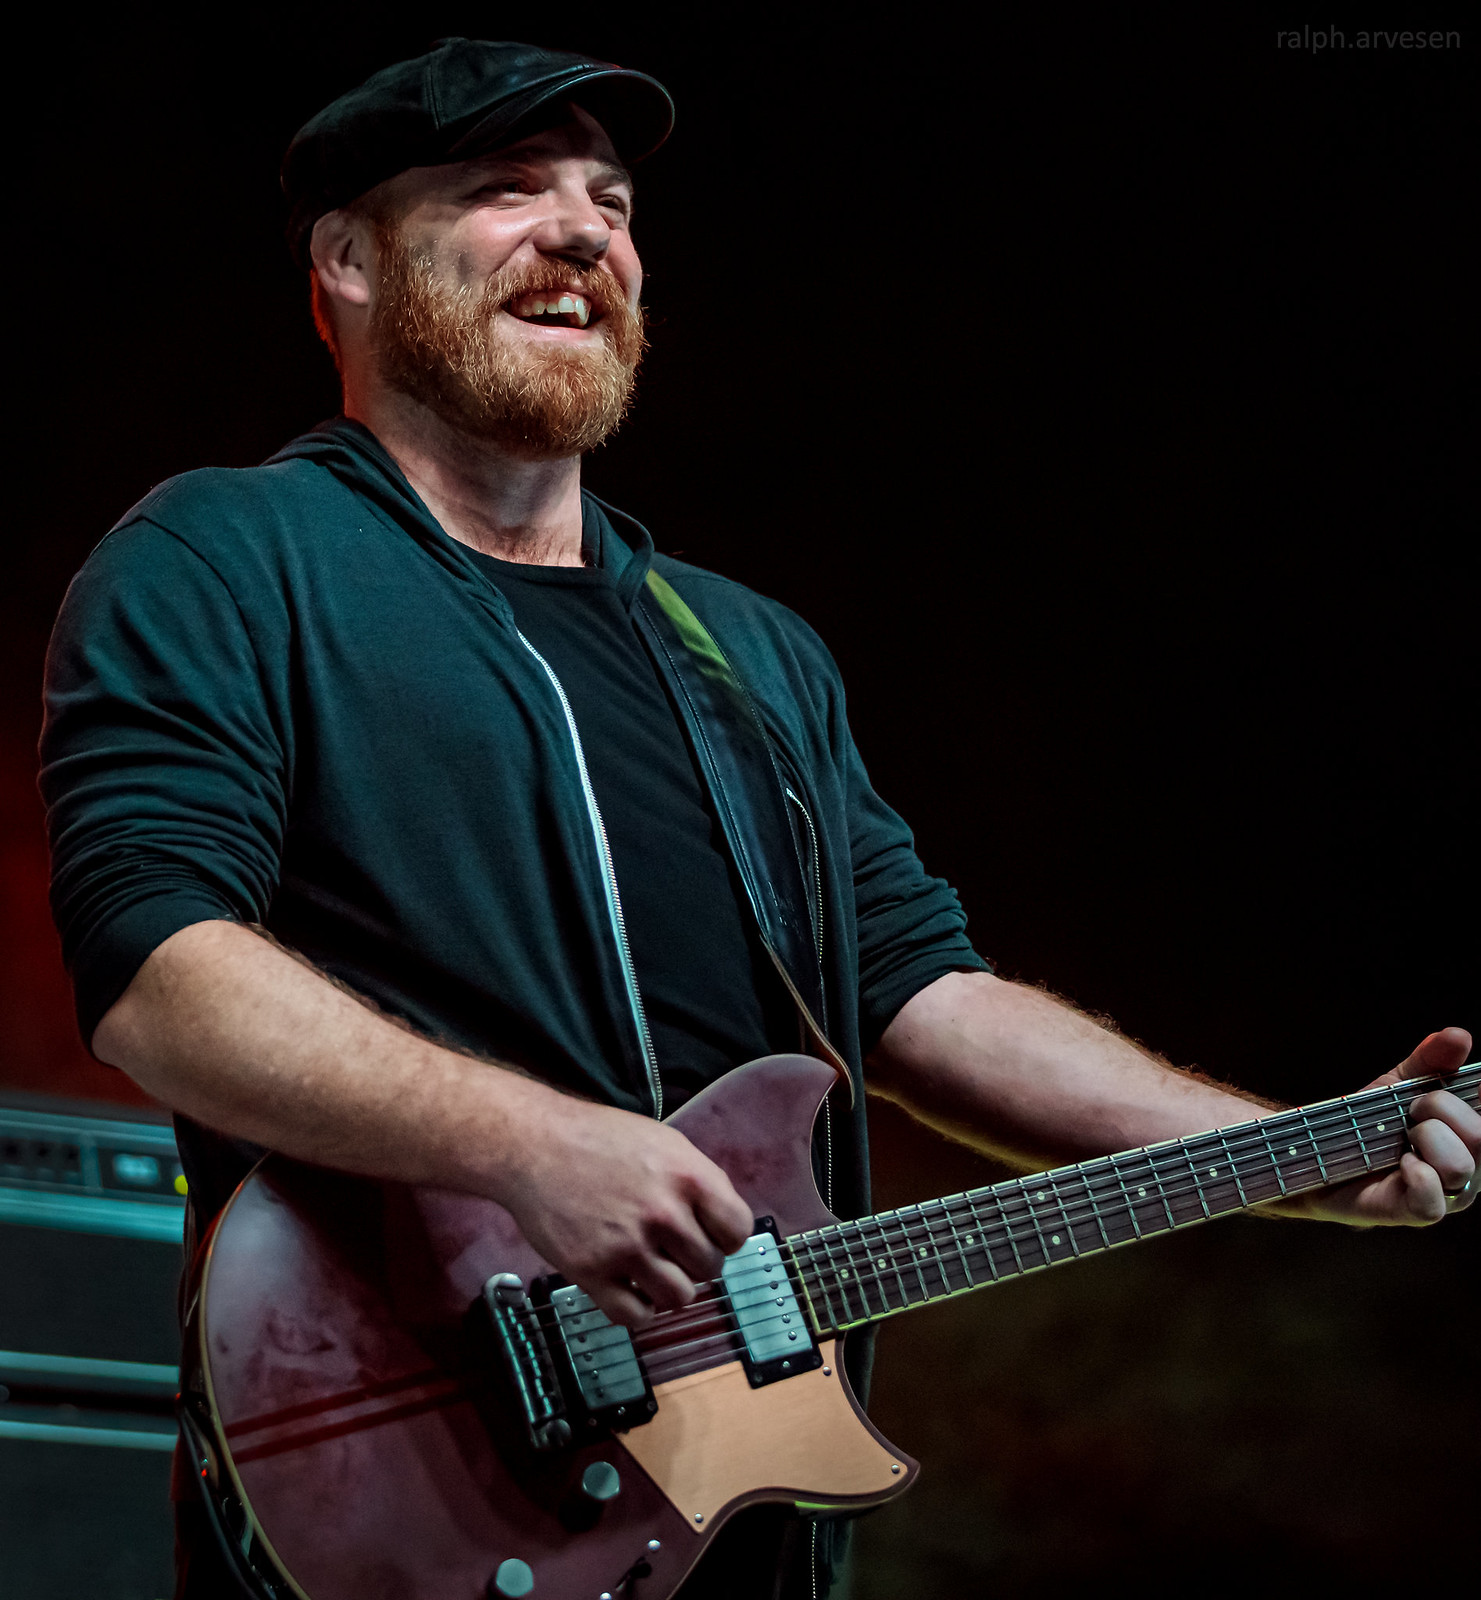 Marc Broussard | Texas Review | Ralph Arvesen